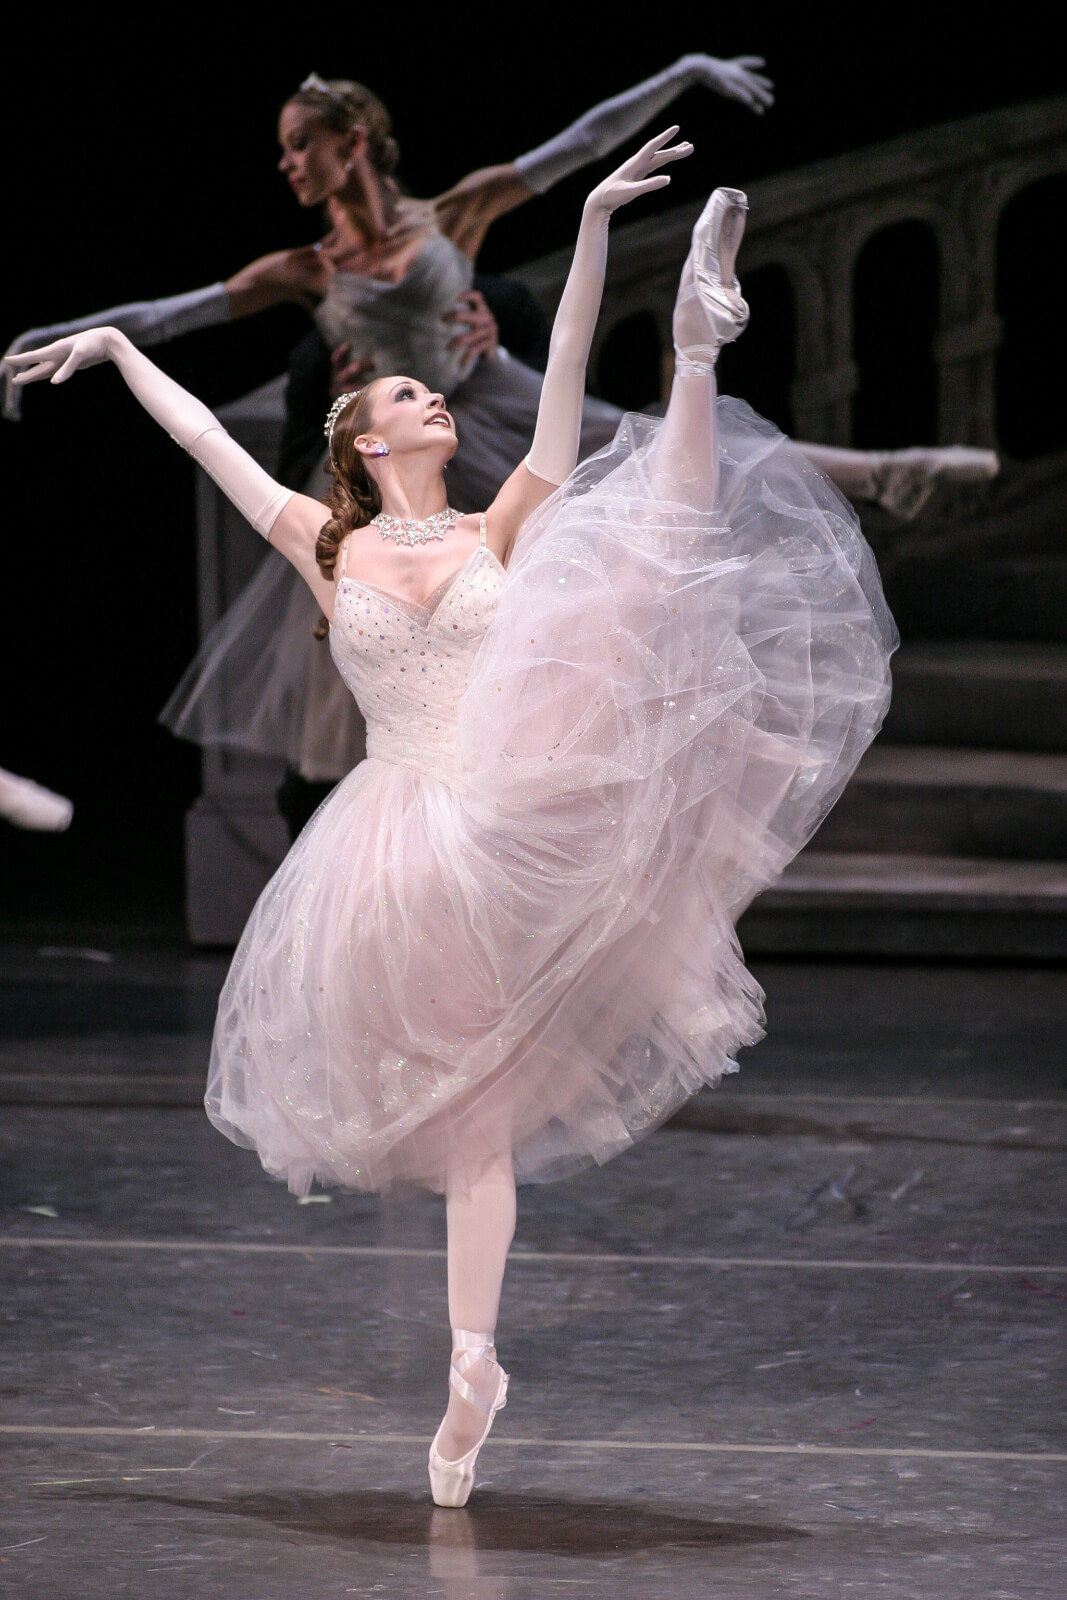 Maria Korowski in a solo moment, en pointe with a grand battement.